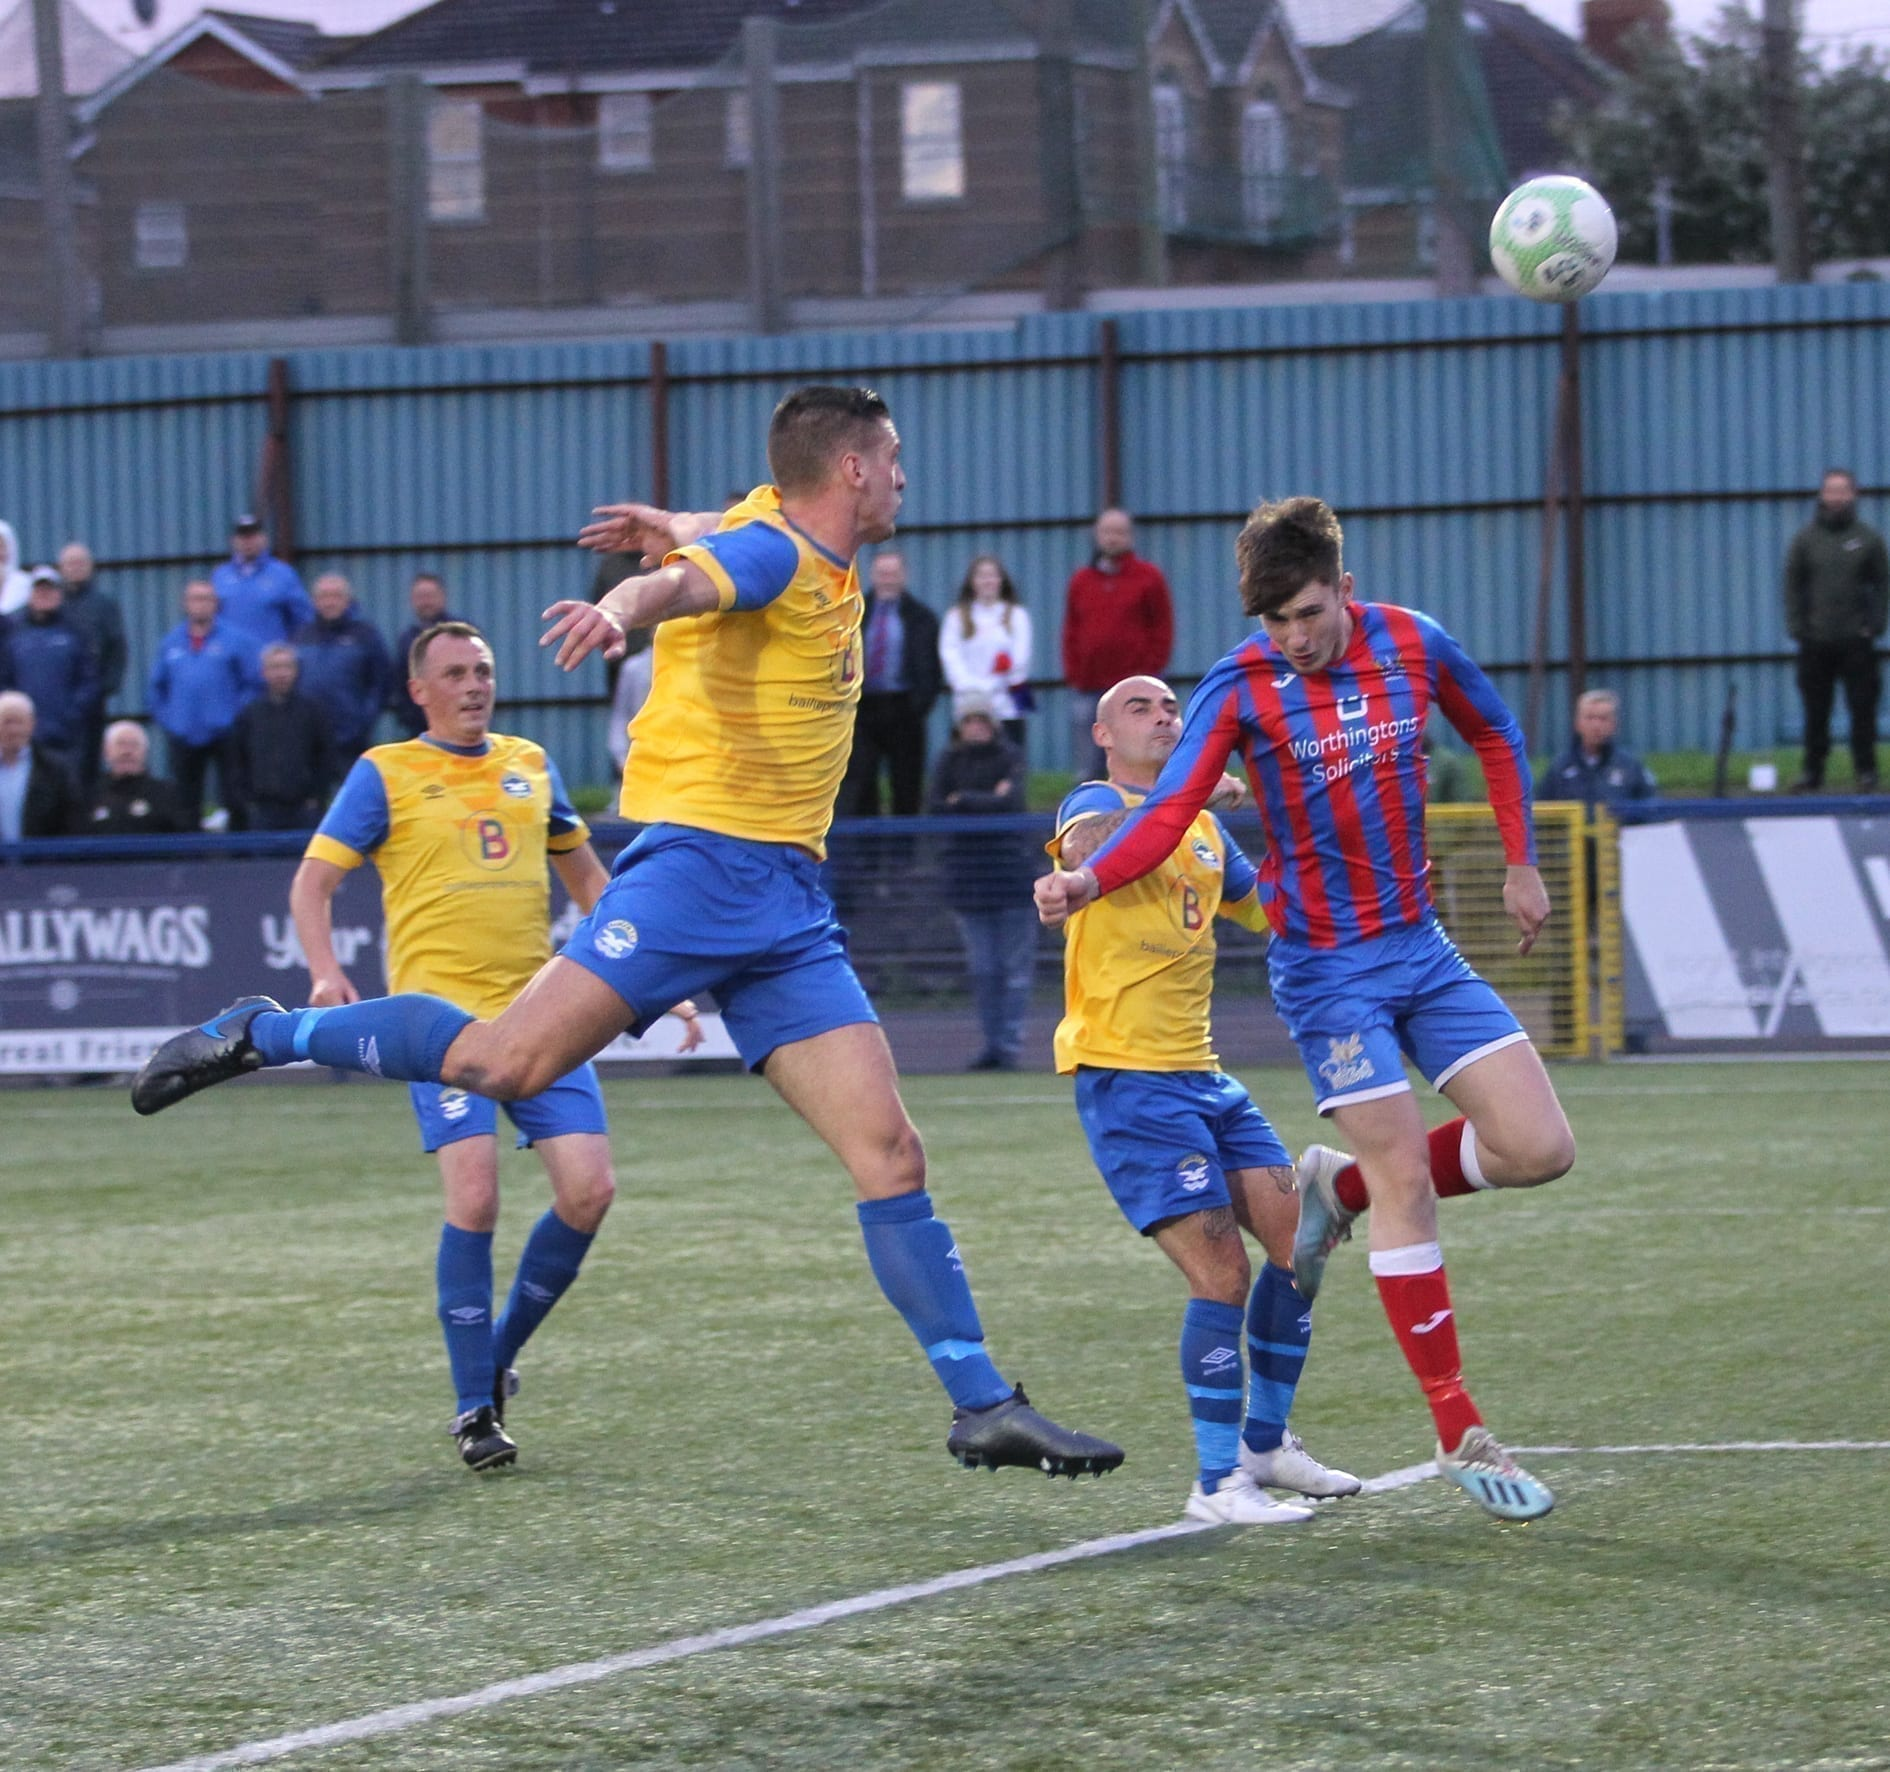 Bangor lose to Ards in pre-season cup